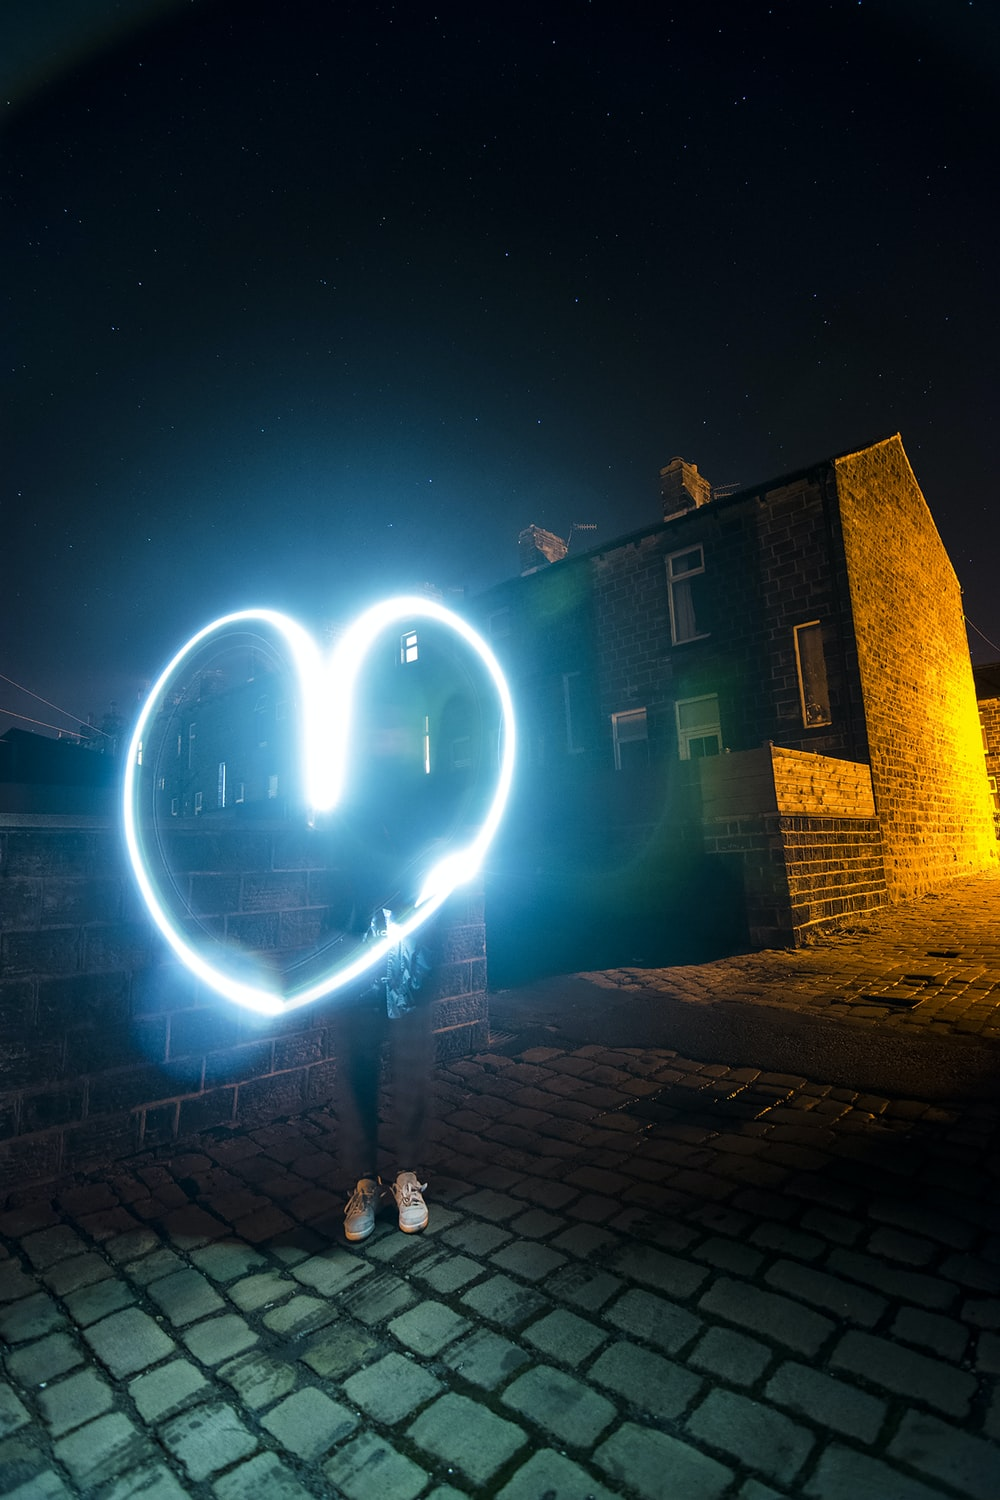 person holding heart wool fire beside building during nighttime